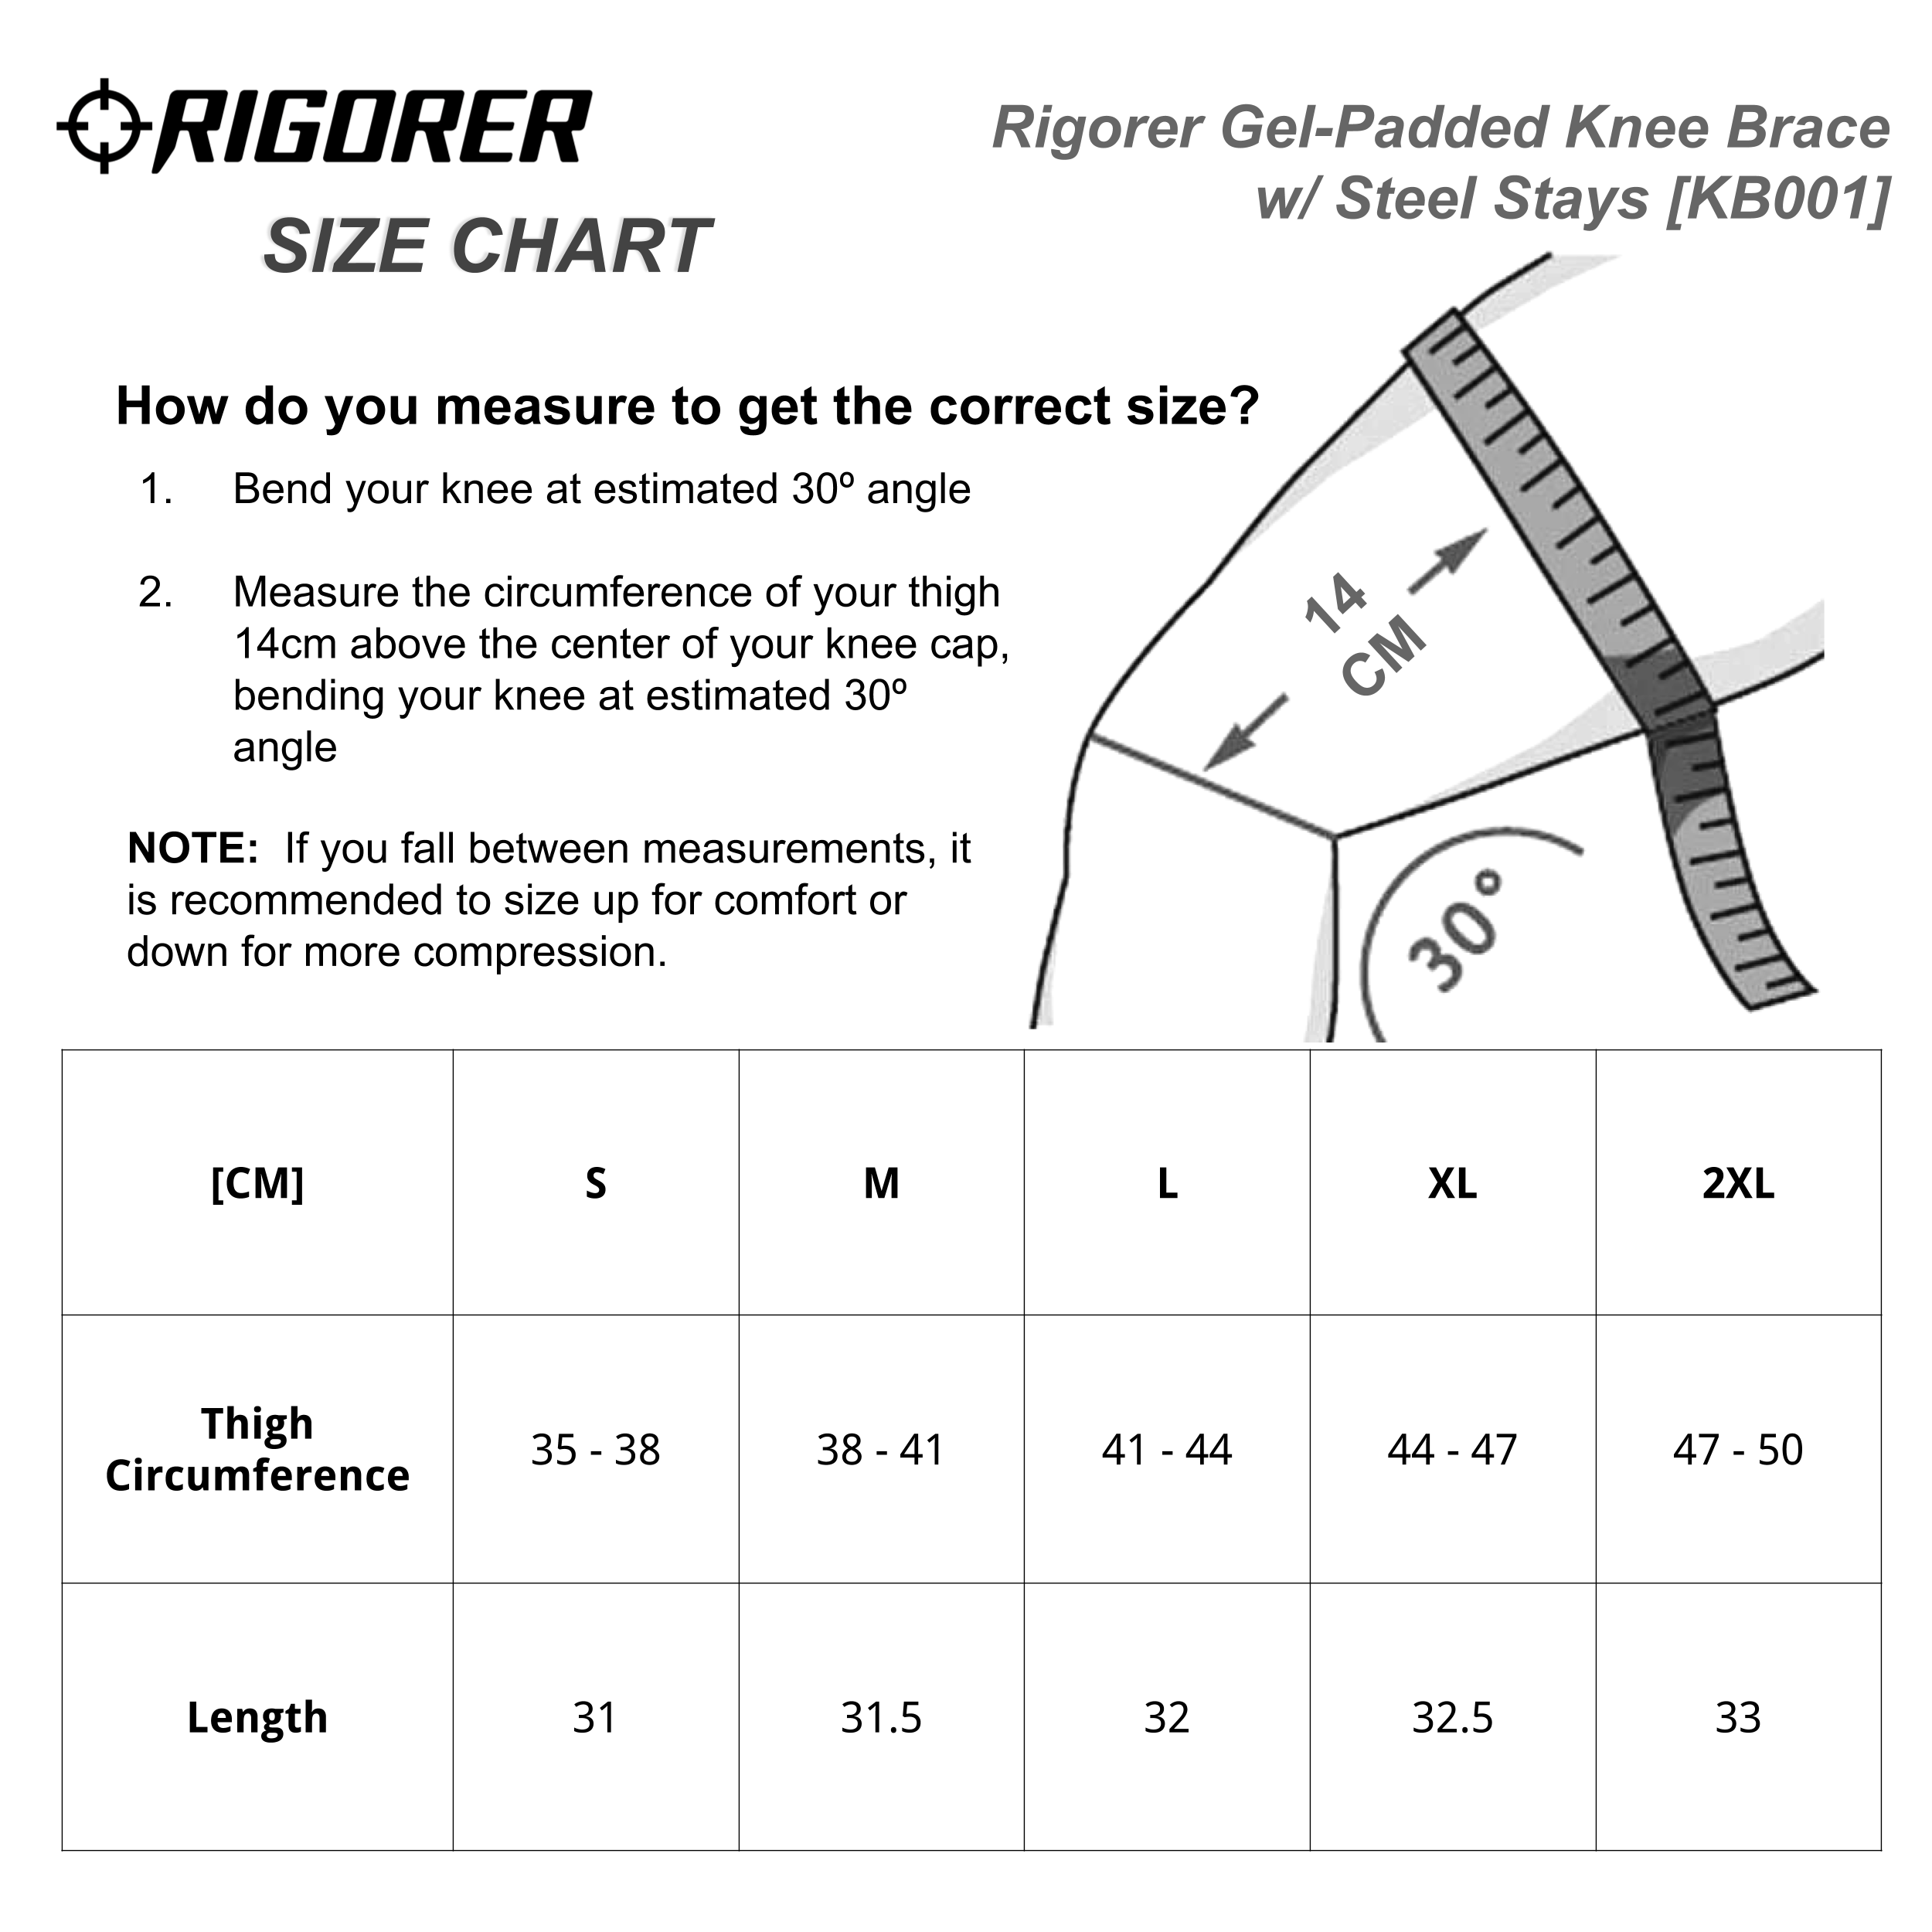 Rigorer Gel-Padded Knee Brace w/ Steel Stays [KB001] Sizing Chart